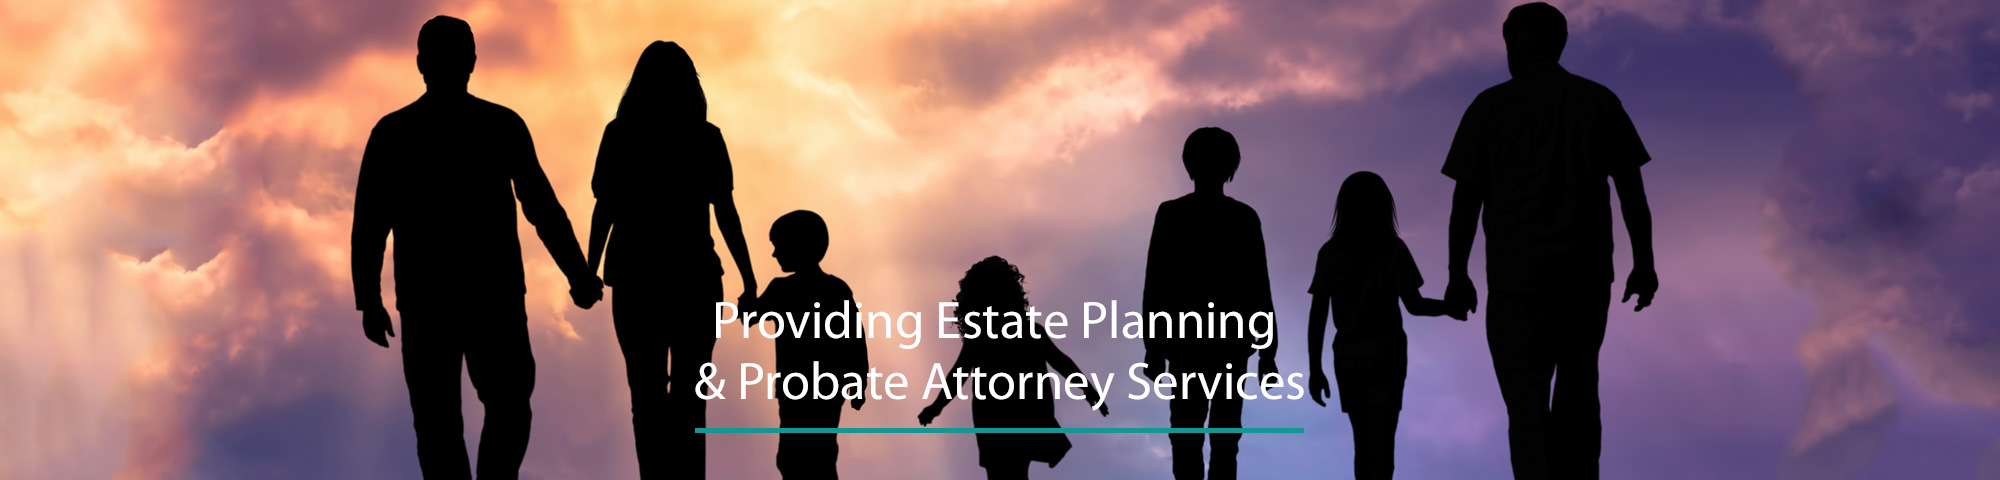 Estate Planning & Probate Panama City